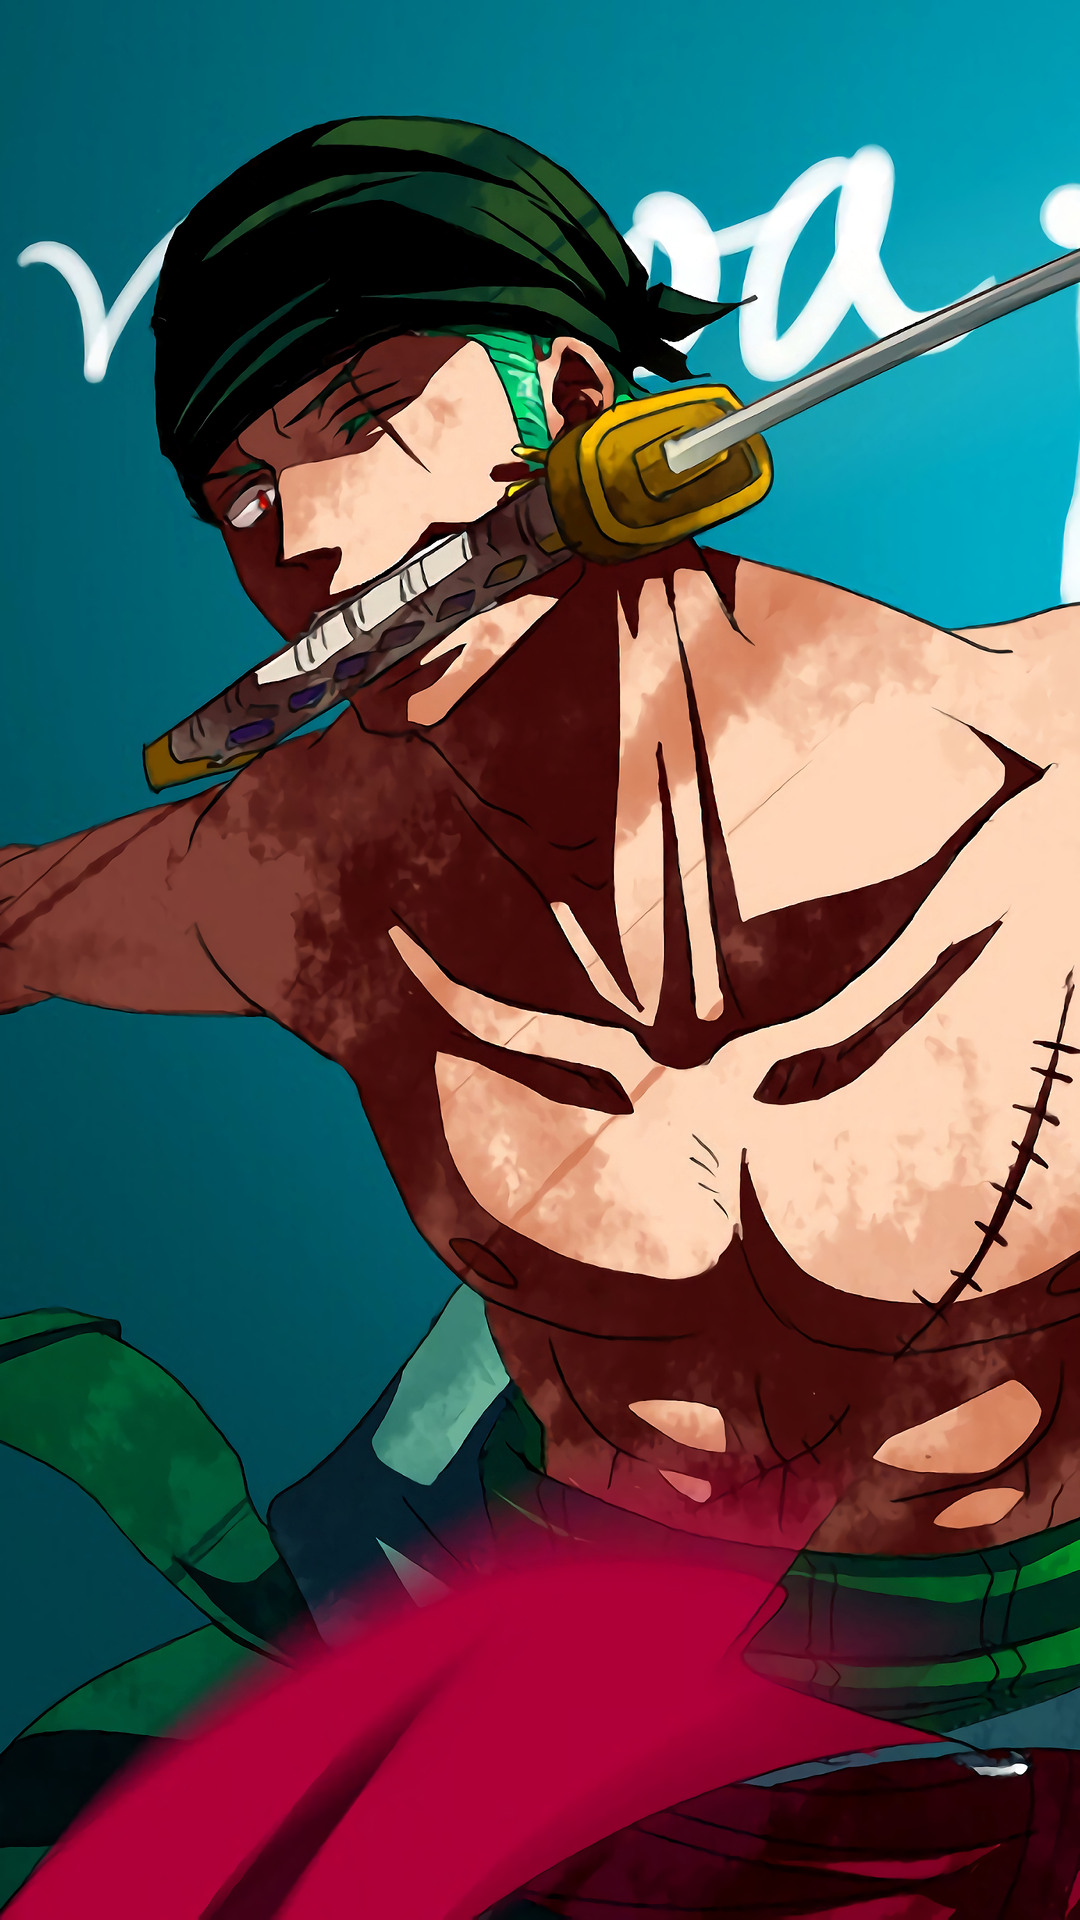 Books movies celebrities singers bands models or anime. Wallpaper One Piece Zoro 4k - WALLPAPERS